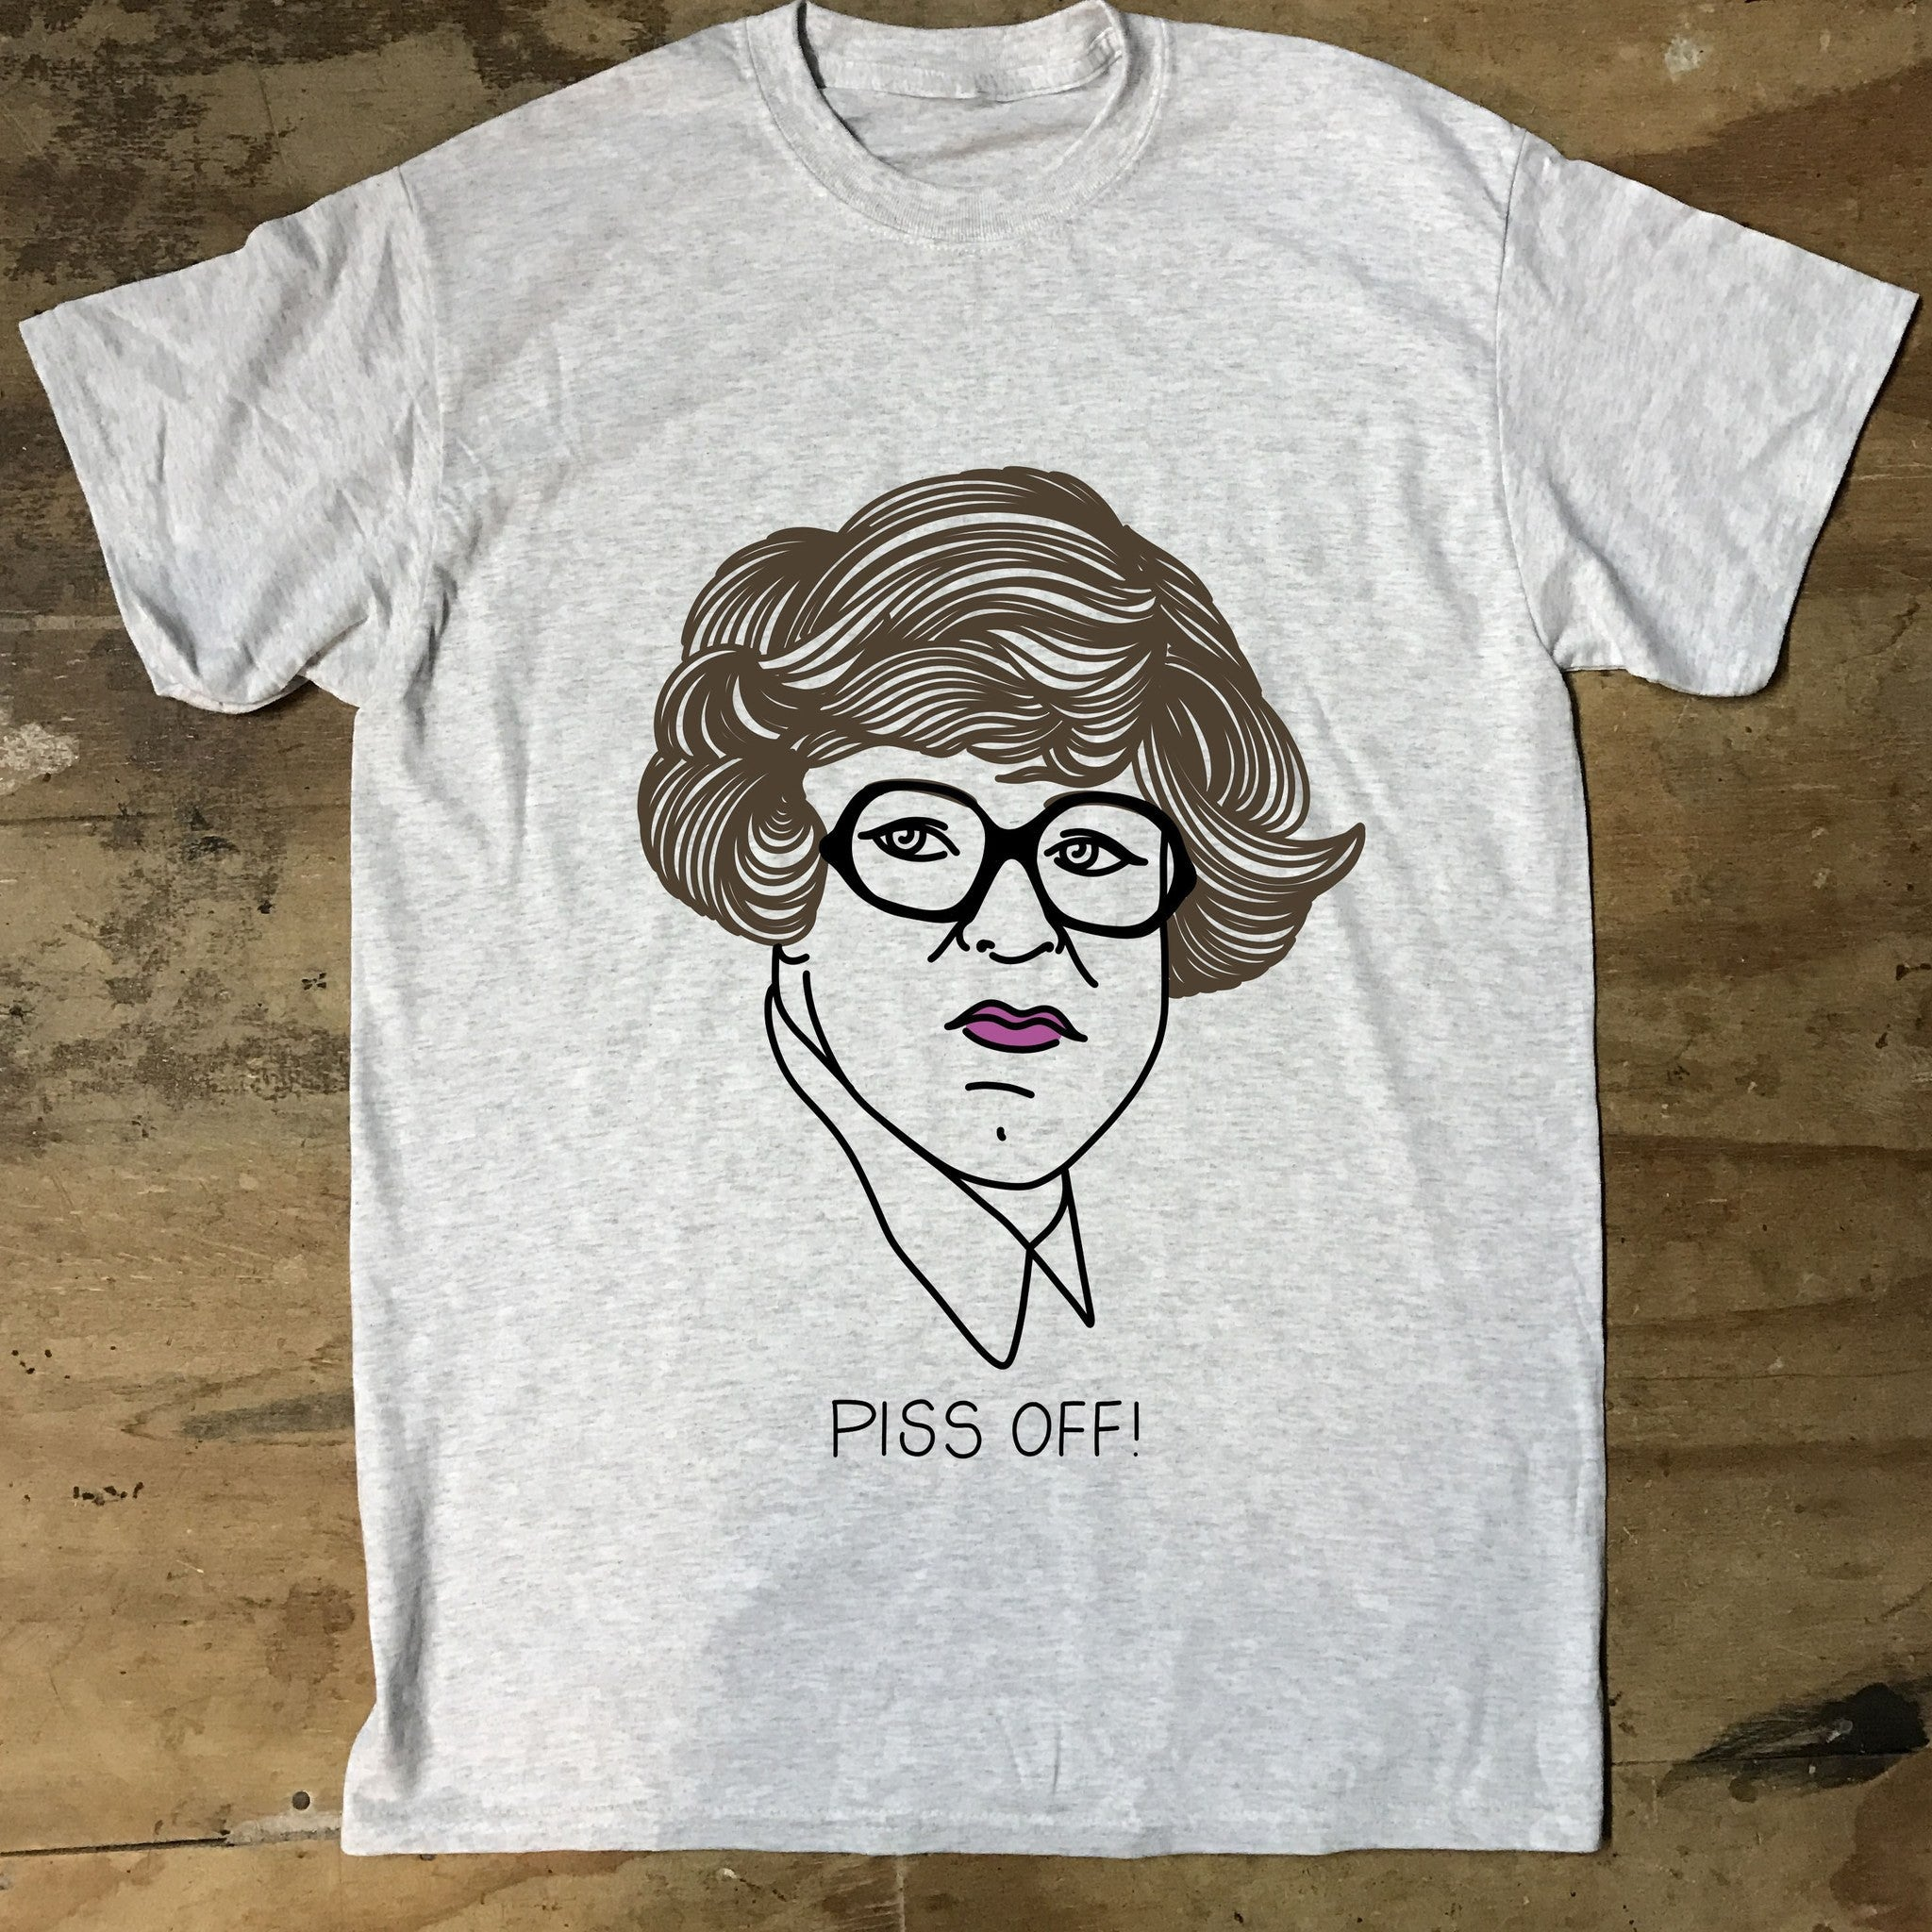 League of Gentlemen - Pauline - Piss Off - Jiggle Apparel